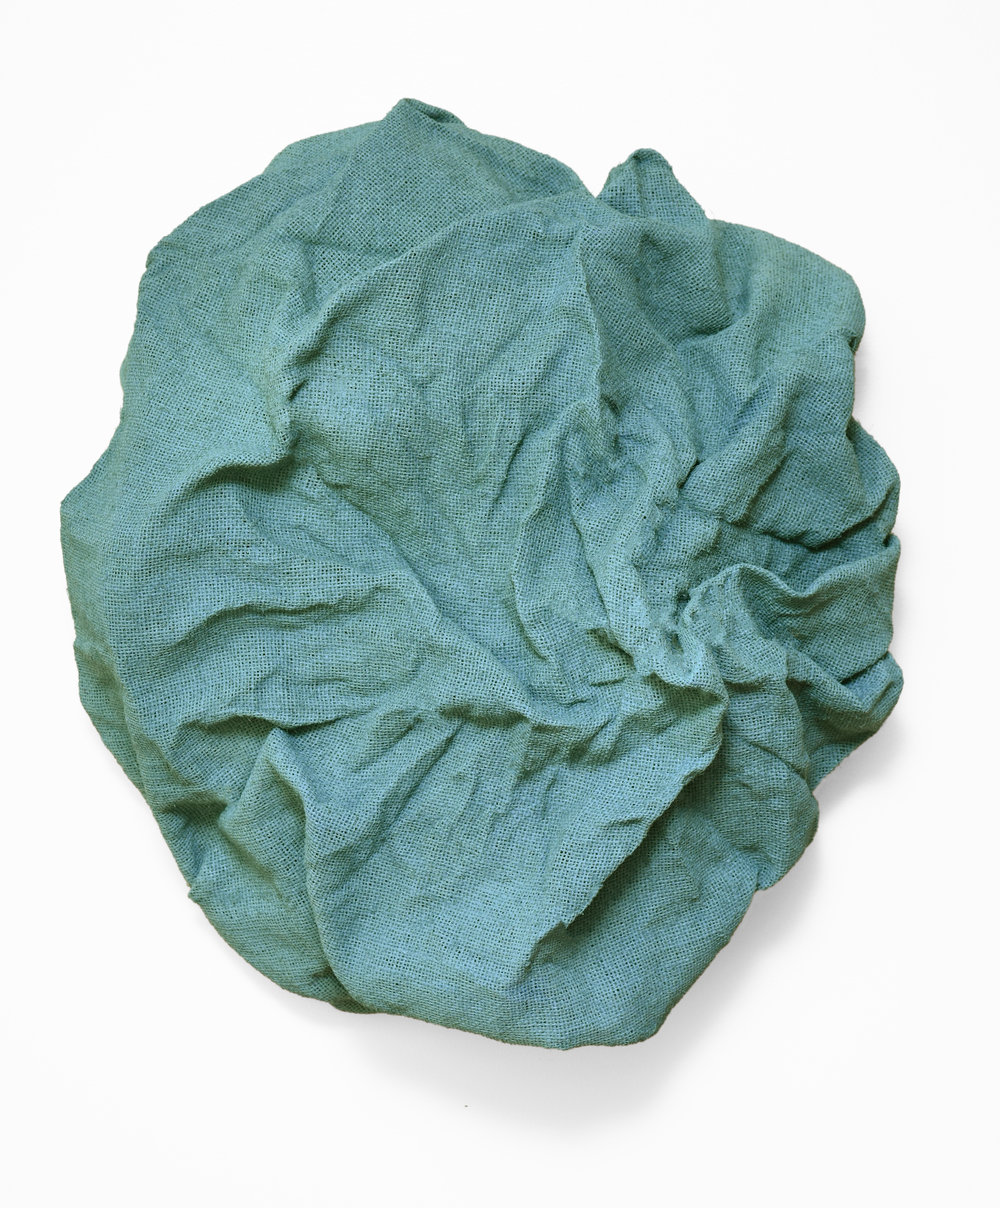 Jade Green Folds